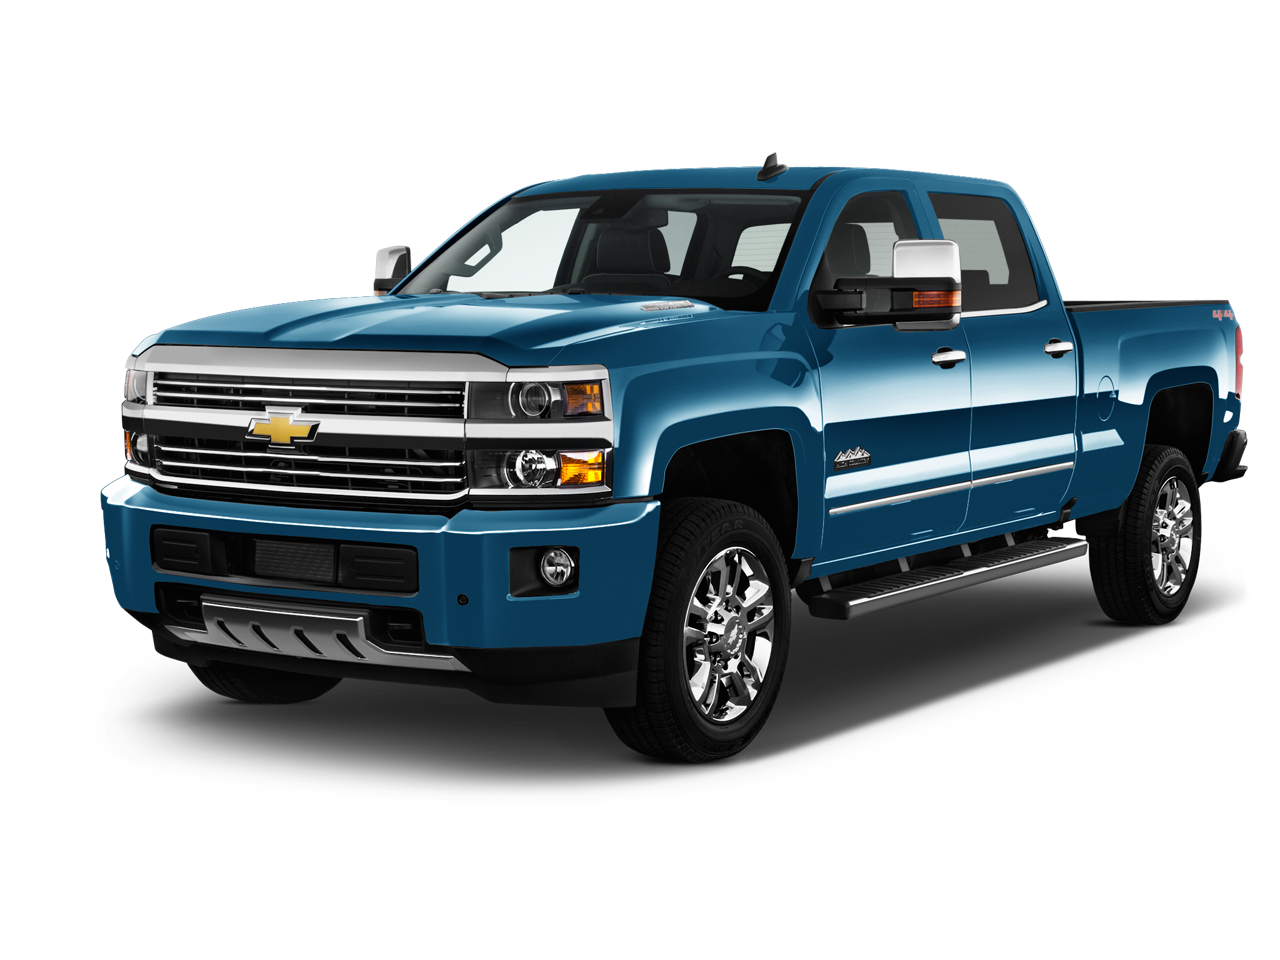 new 2017 chevrolet silverado 2500hd ltz near watrous sk watrous mainline motor products ltd. Black Bedroom Furniture Sets. Home Design Ideas